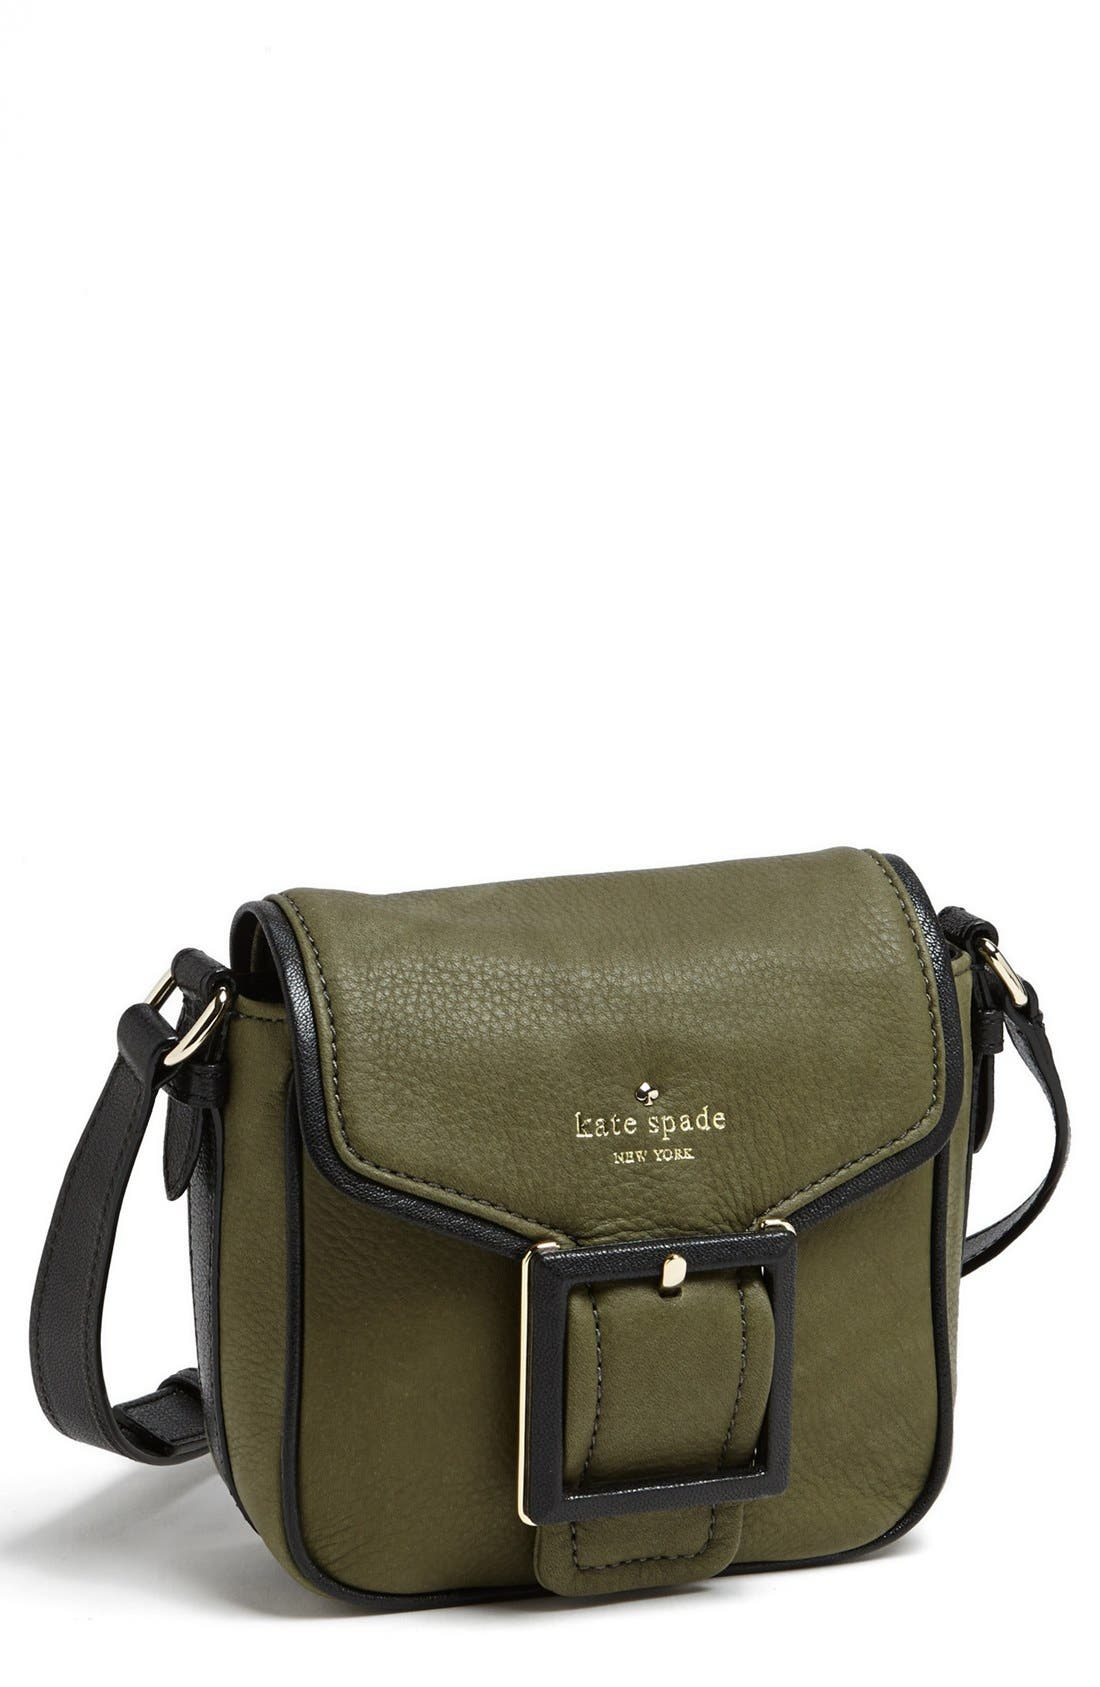 Alternate Image 1 Selected - kate spade new york 'abbey court - charon' crossbody bag